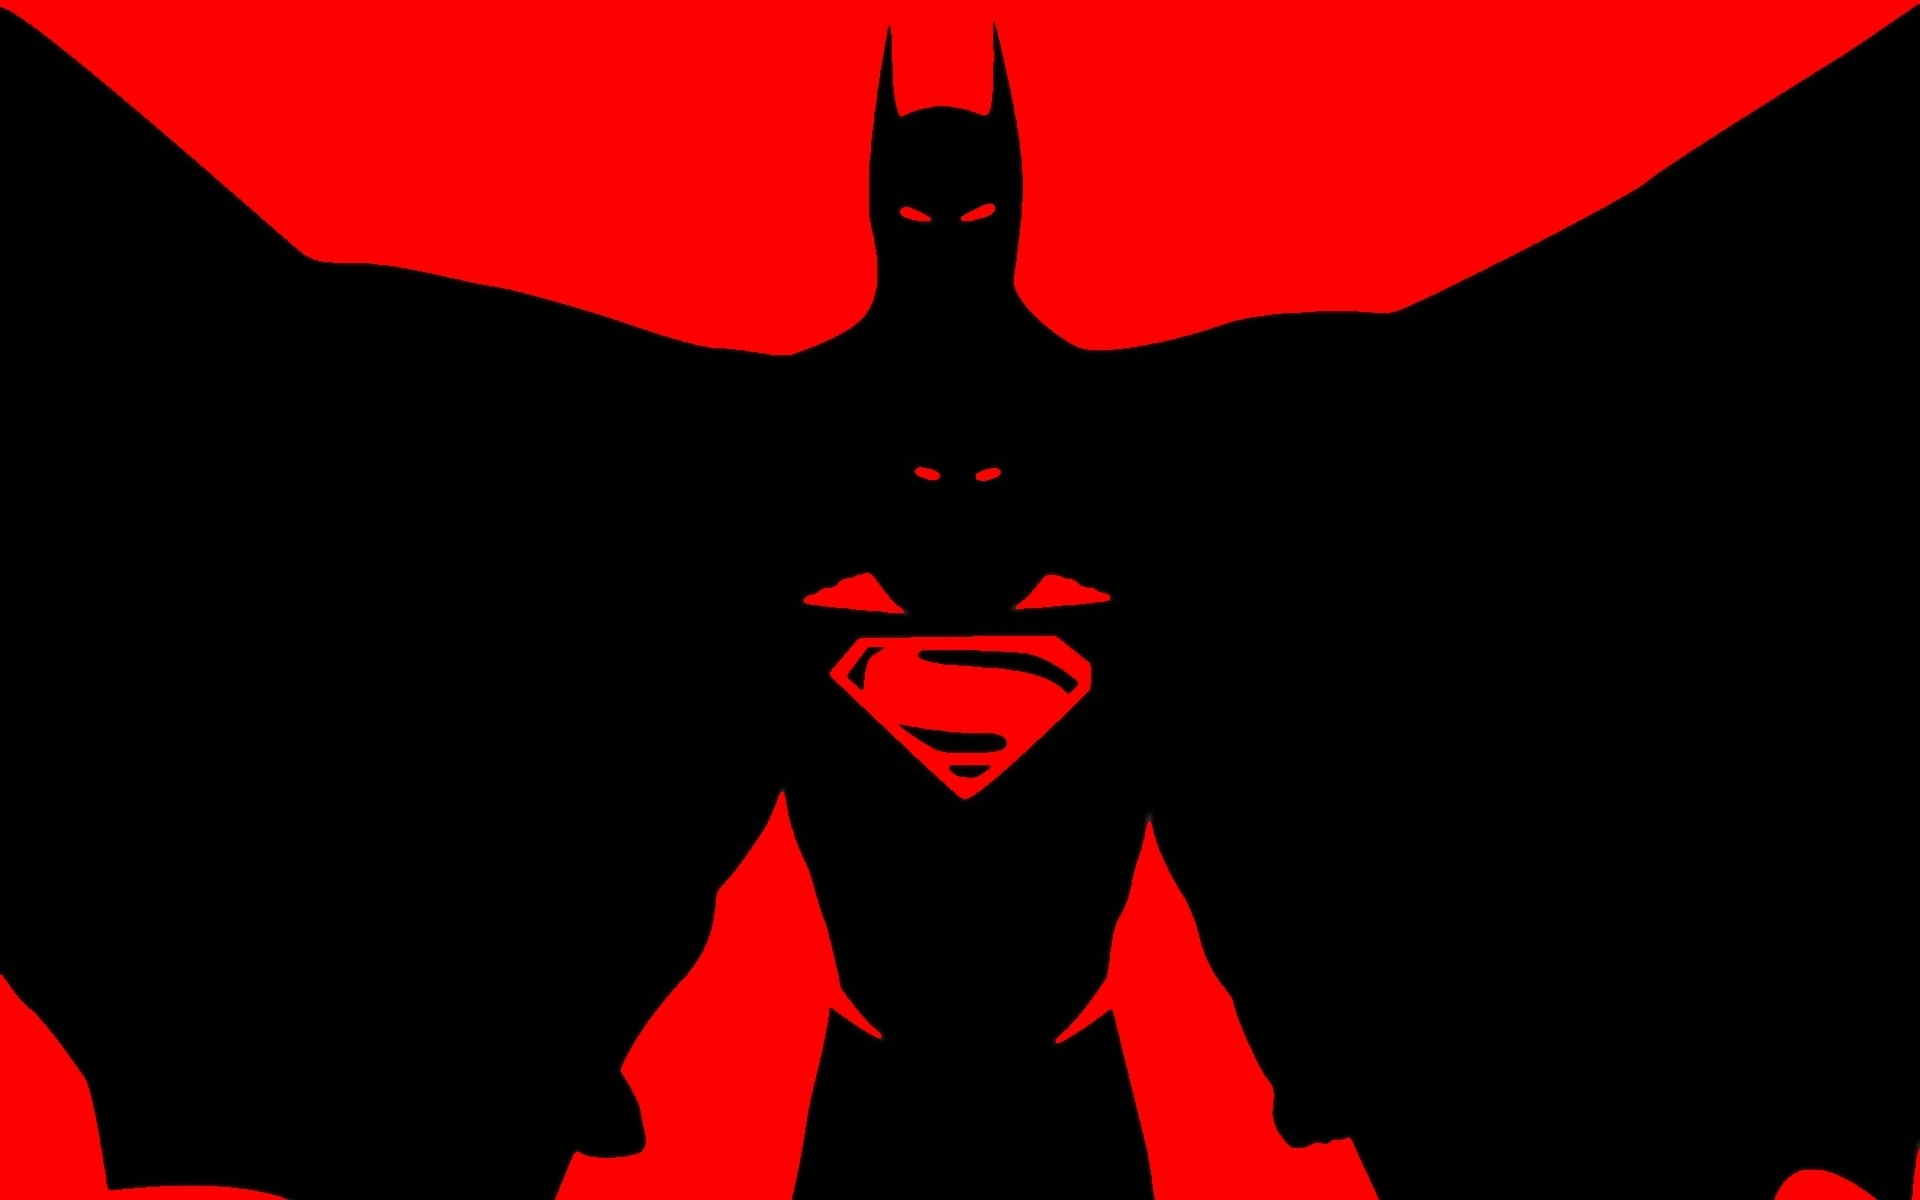 Superman Wallpapers Free Download 1600×1200 Superman Image Wallpapers (41  Wallpapers)   Adorable